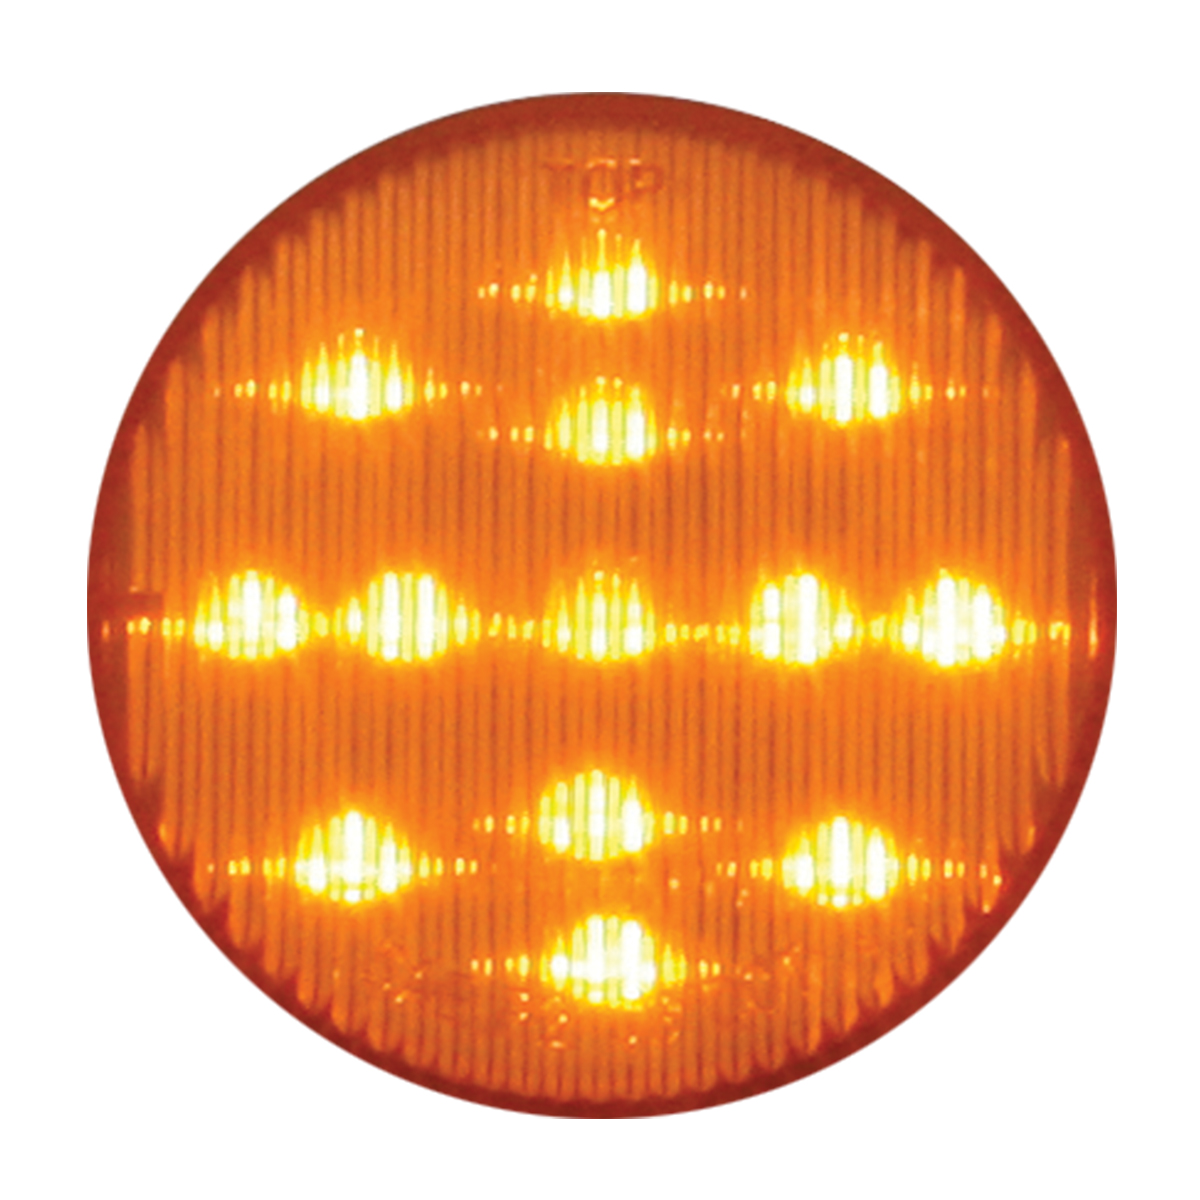 "75120 24V 2-1/2"" Round Fleet Marker Light"